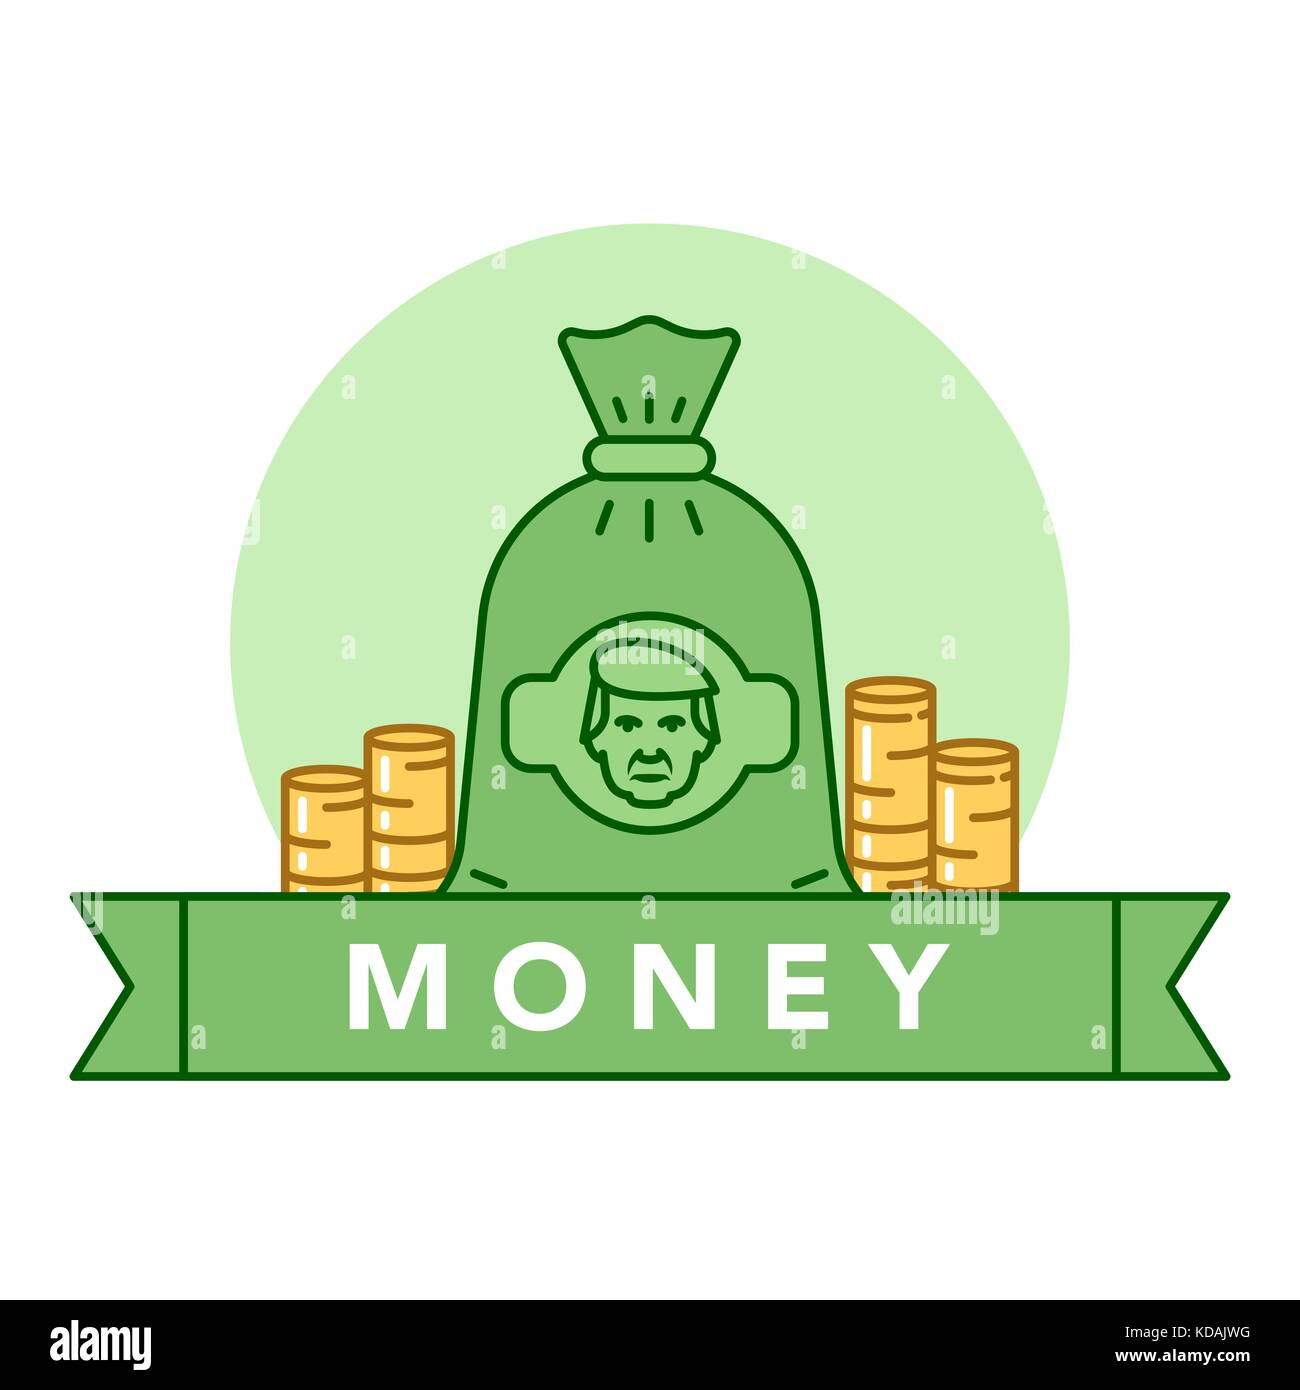 Vector illustration of a green money bag and golden coins on white background with lettering. Money and financial - Stock Vector